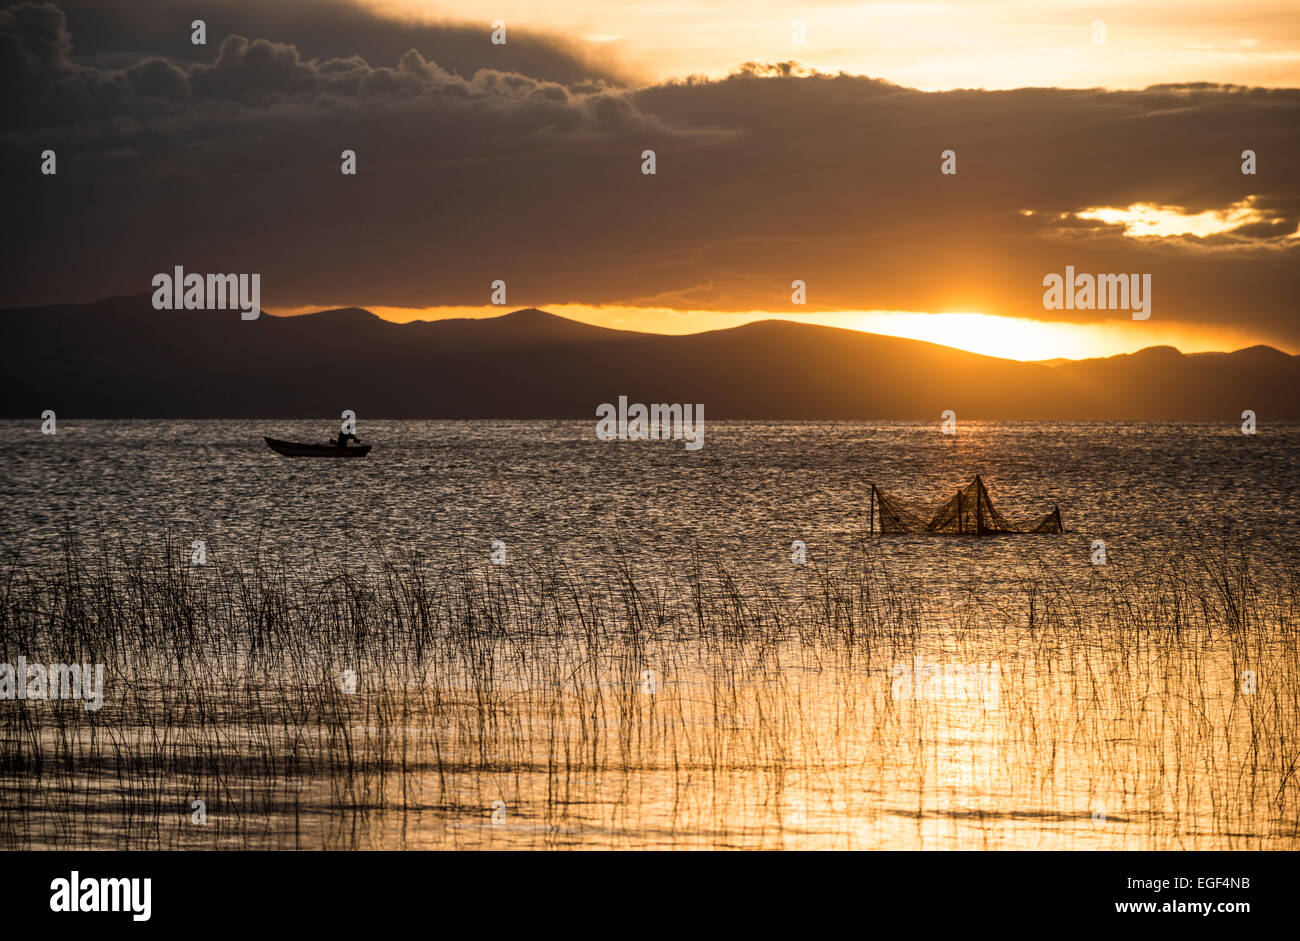 Sunset over Lake Titicaca, Copacabana, Lake Titicaca, Bolivia Stock Photo